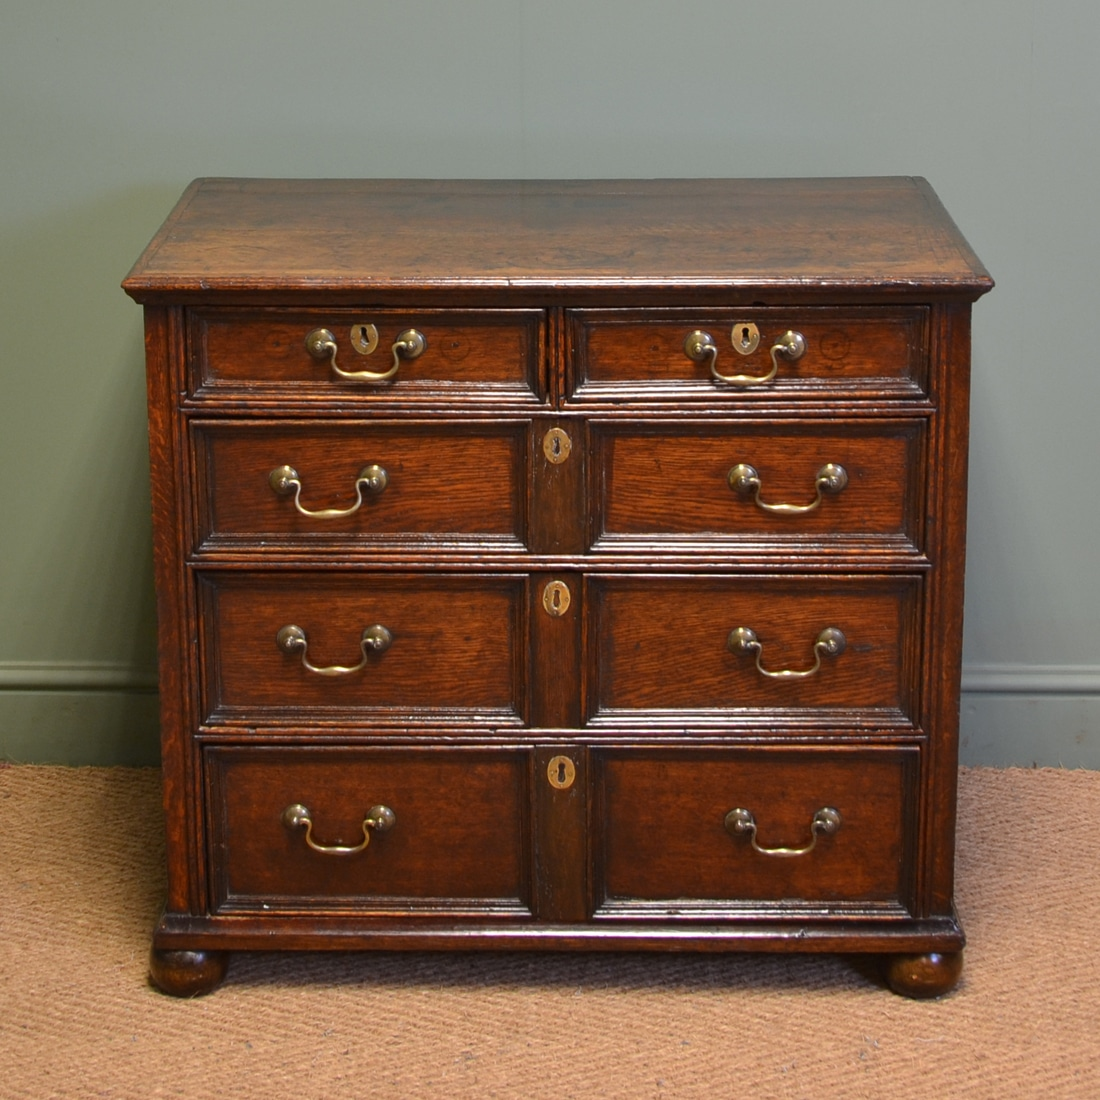 Early 18th Century Country House Antique Oak Chest Of Drawers. Antique  Country Furniture - Antique Country Furniture - Antiques World